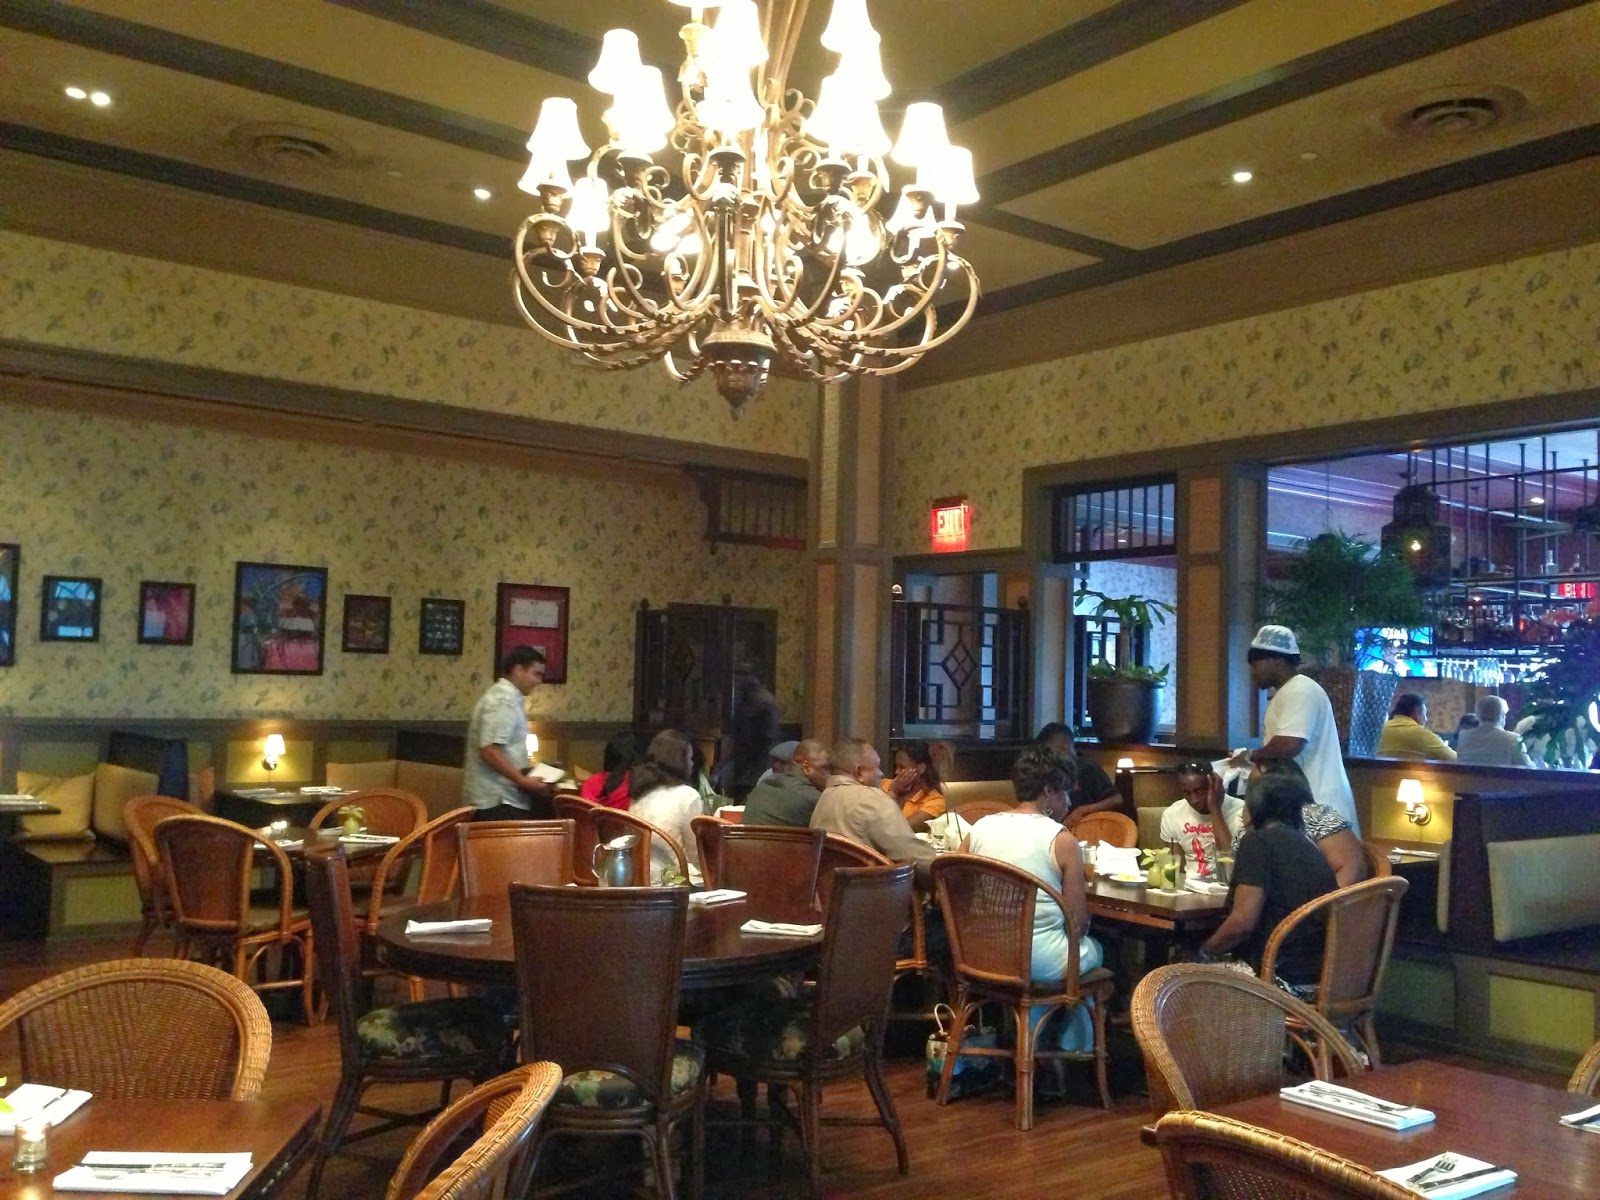 Eating orlando an orlando food blog living the island lifestyle living the island lifestyle in orlando at tommy bahama restaurant a review arubaitofo Choice Image